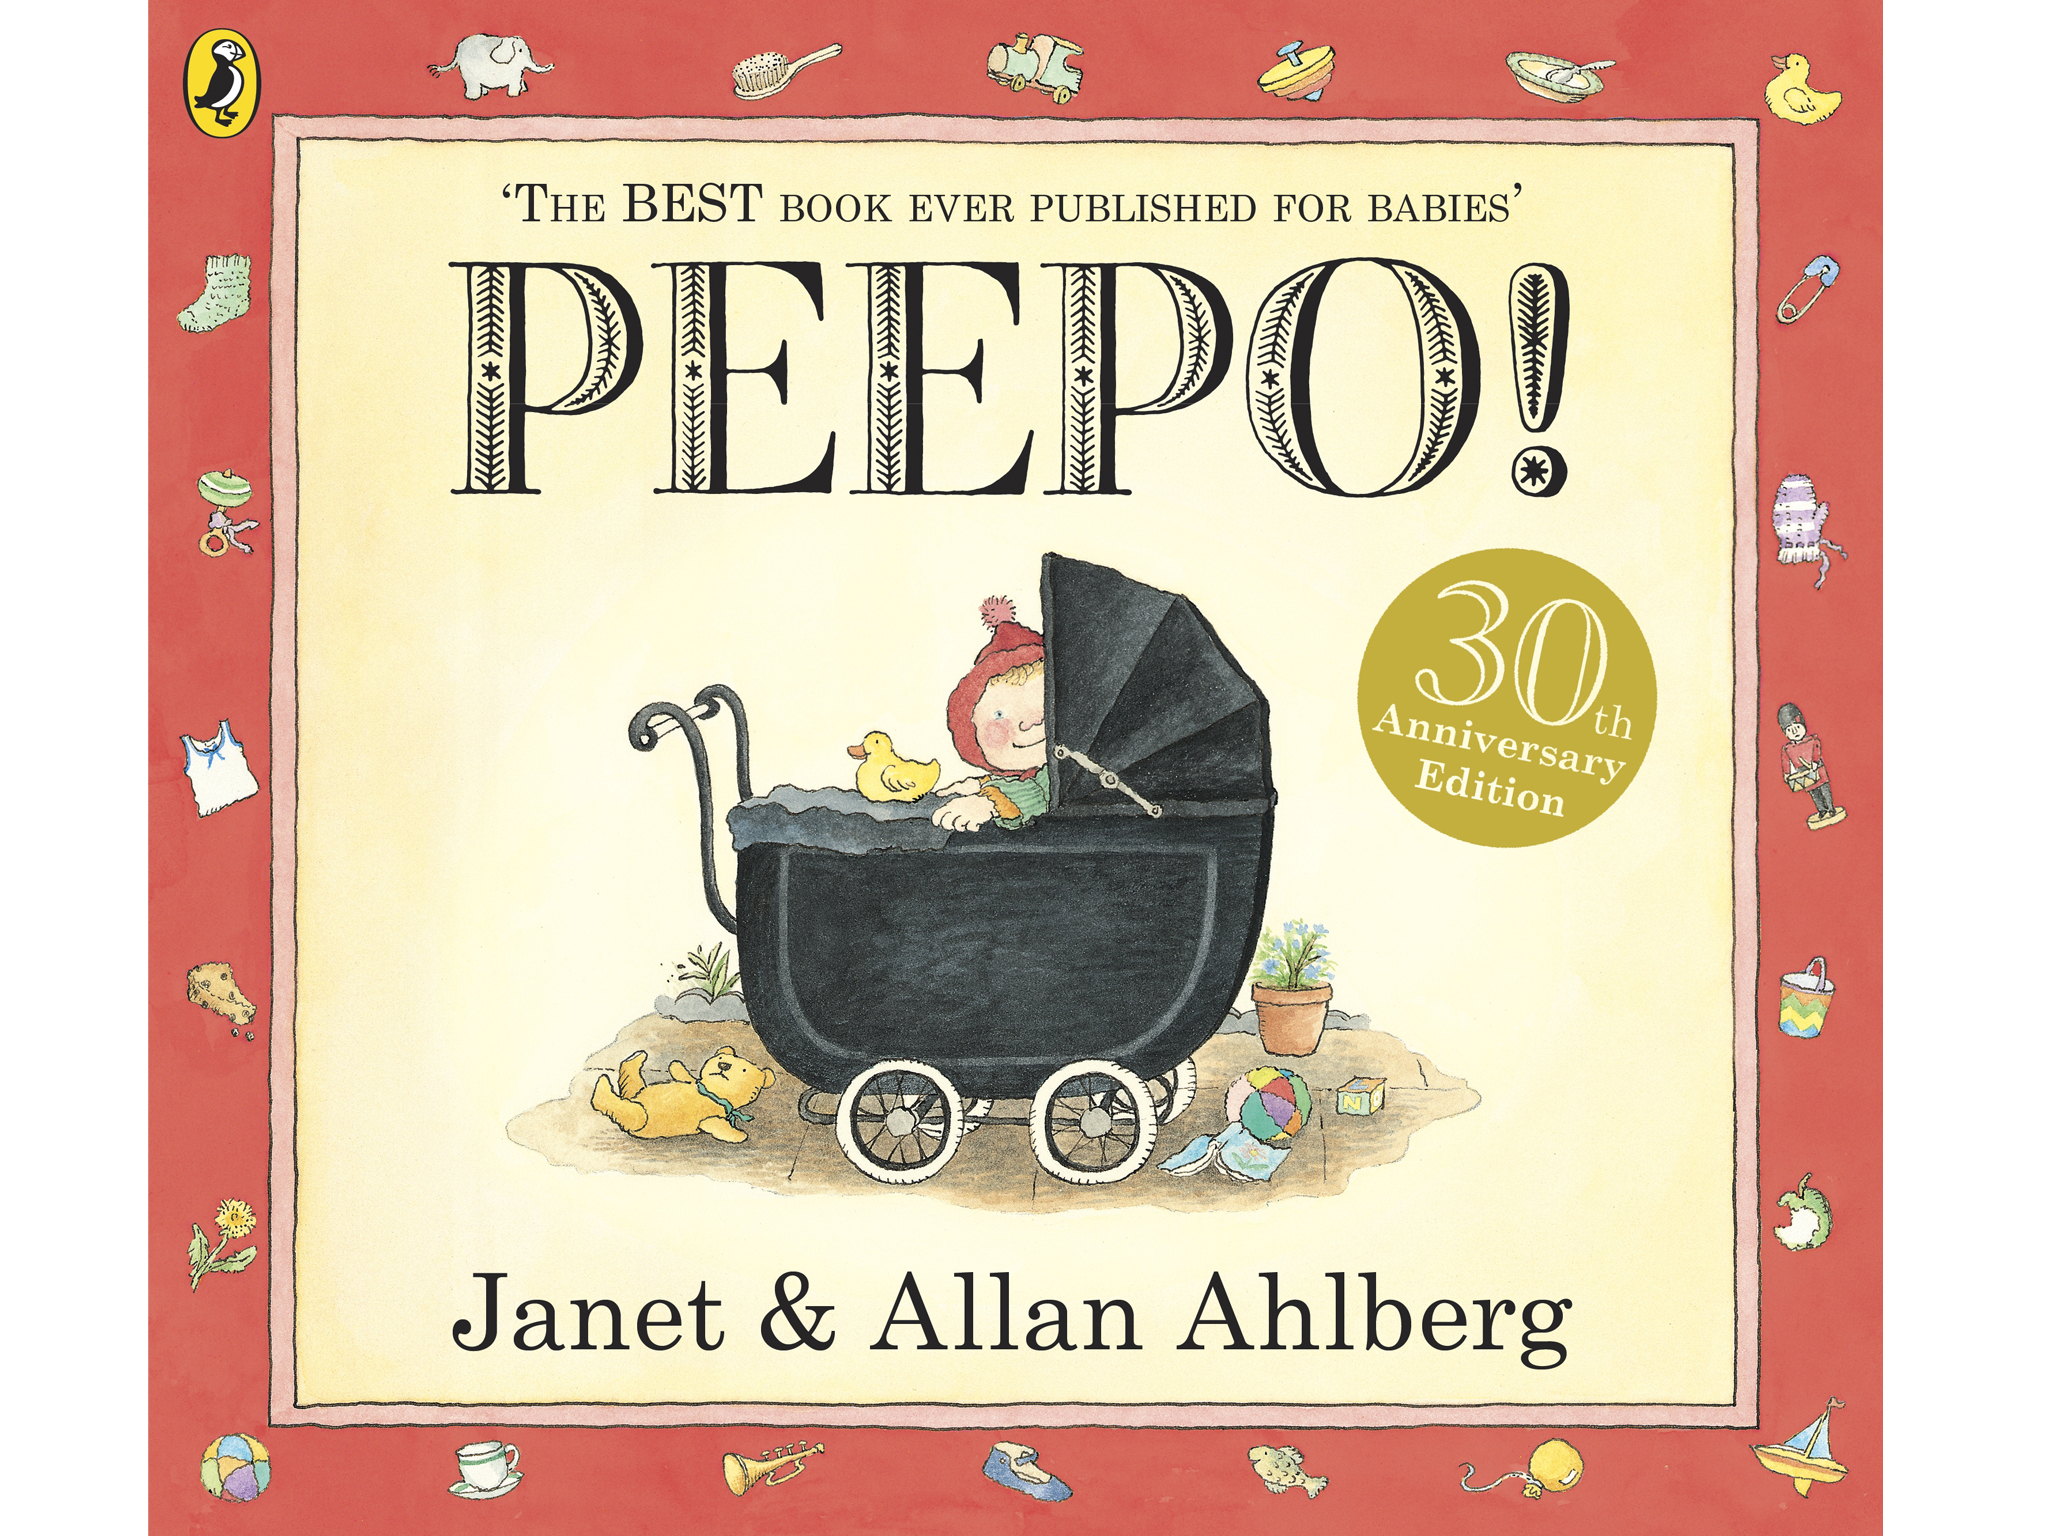 100 best children's books: Peepo